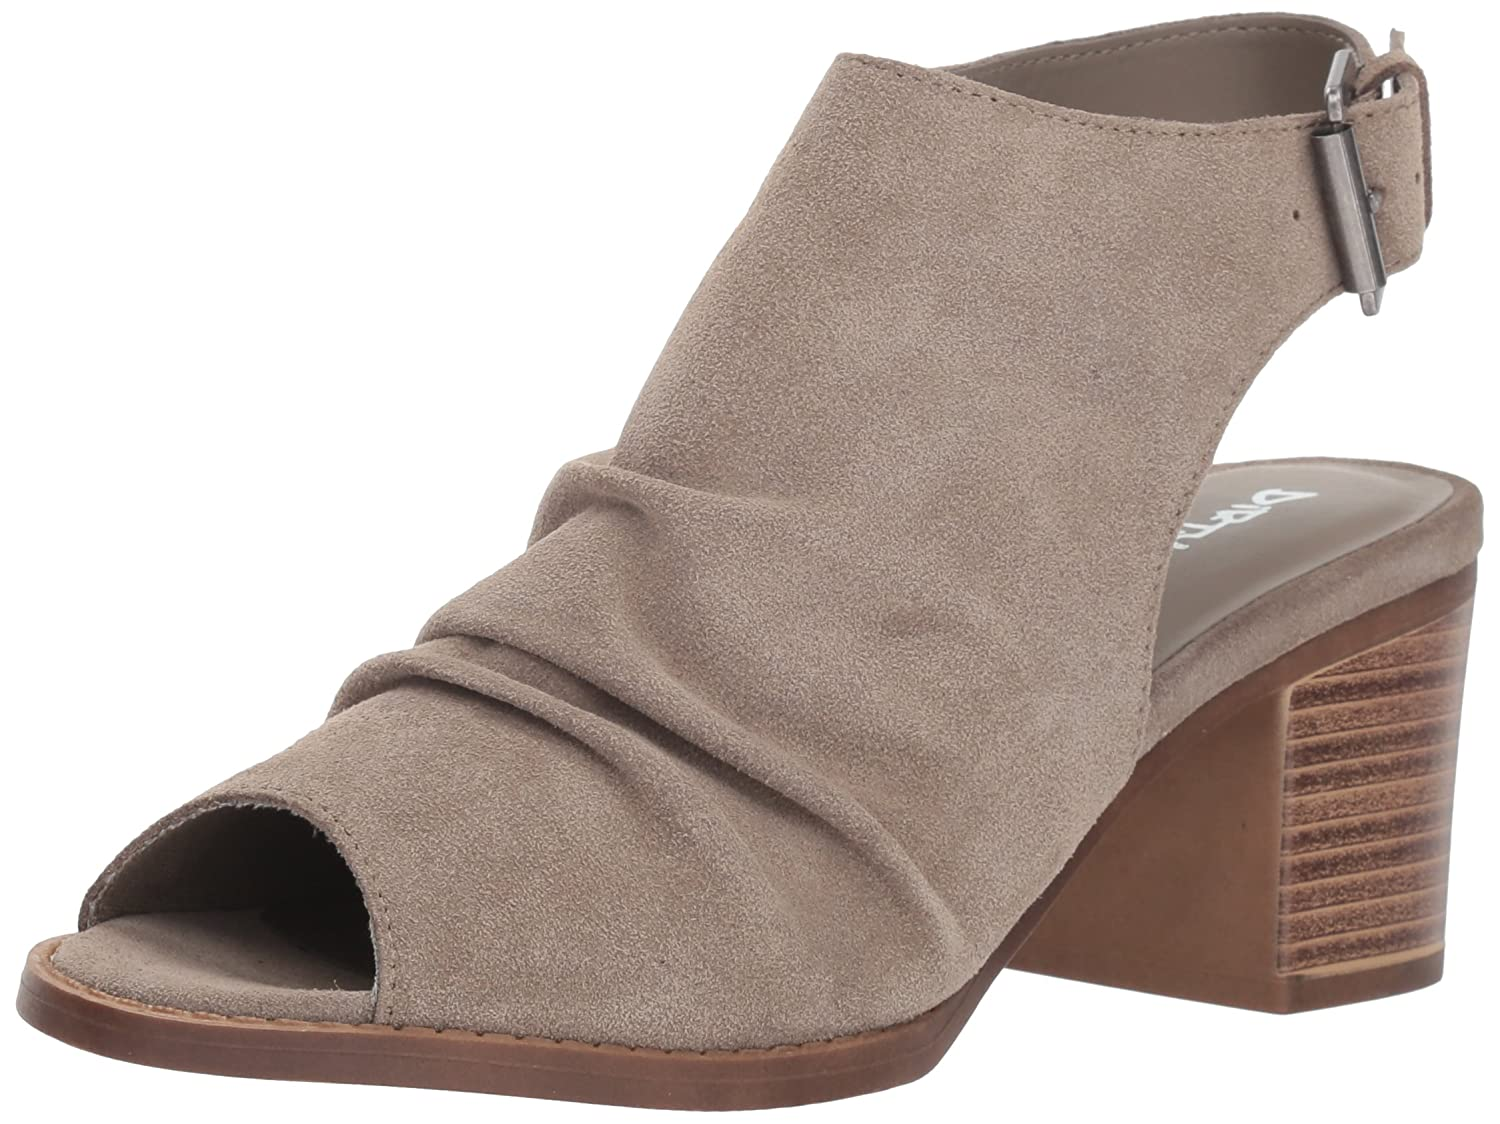 Dirty Laundry Women's Tena Ankle Boot B07BFF815P 6 B(M) US|Feather Grey Suede